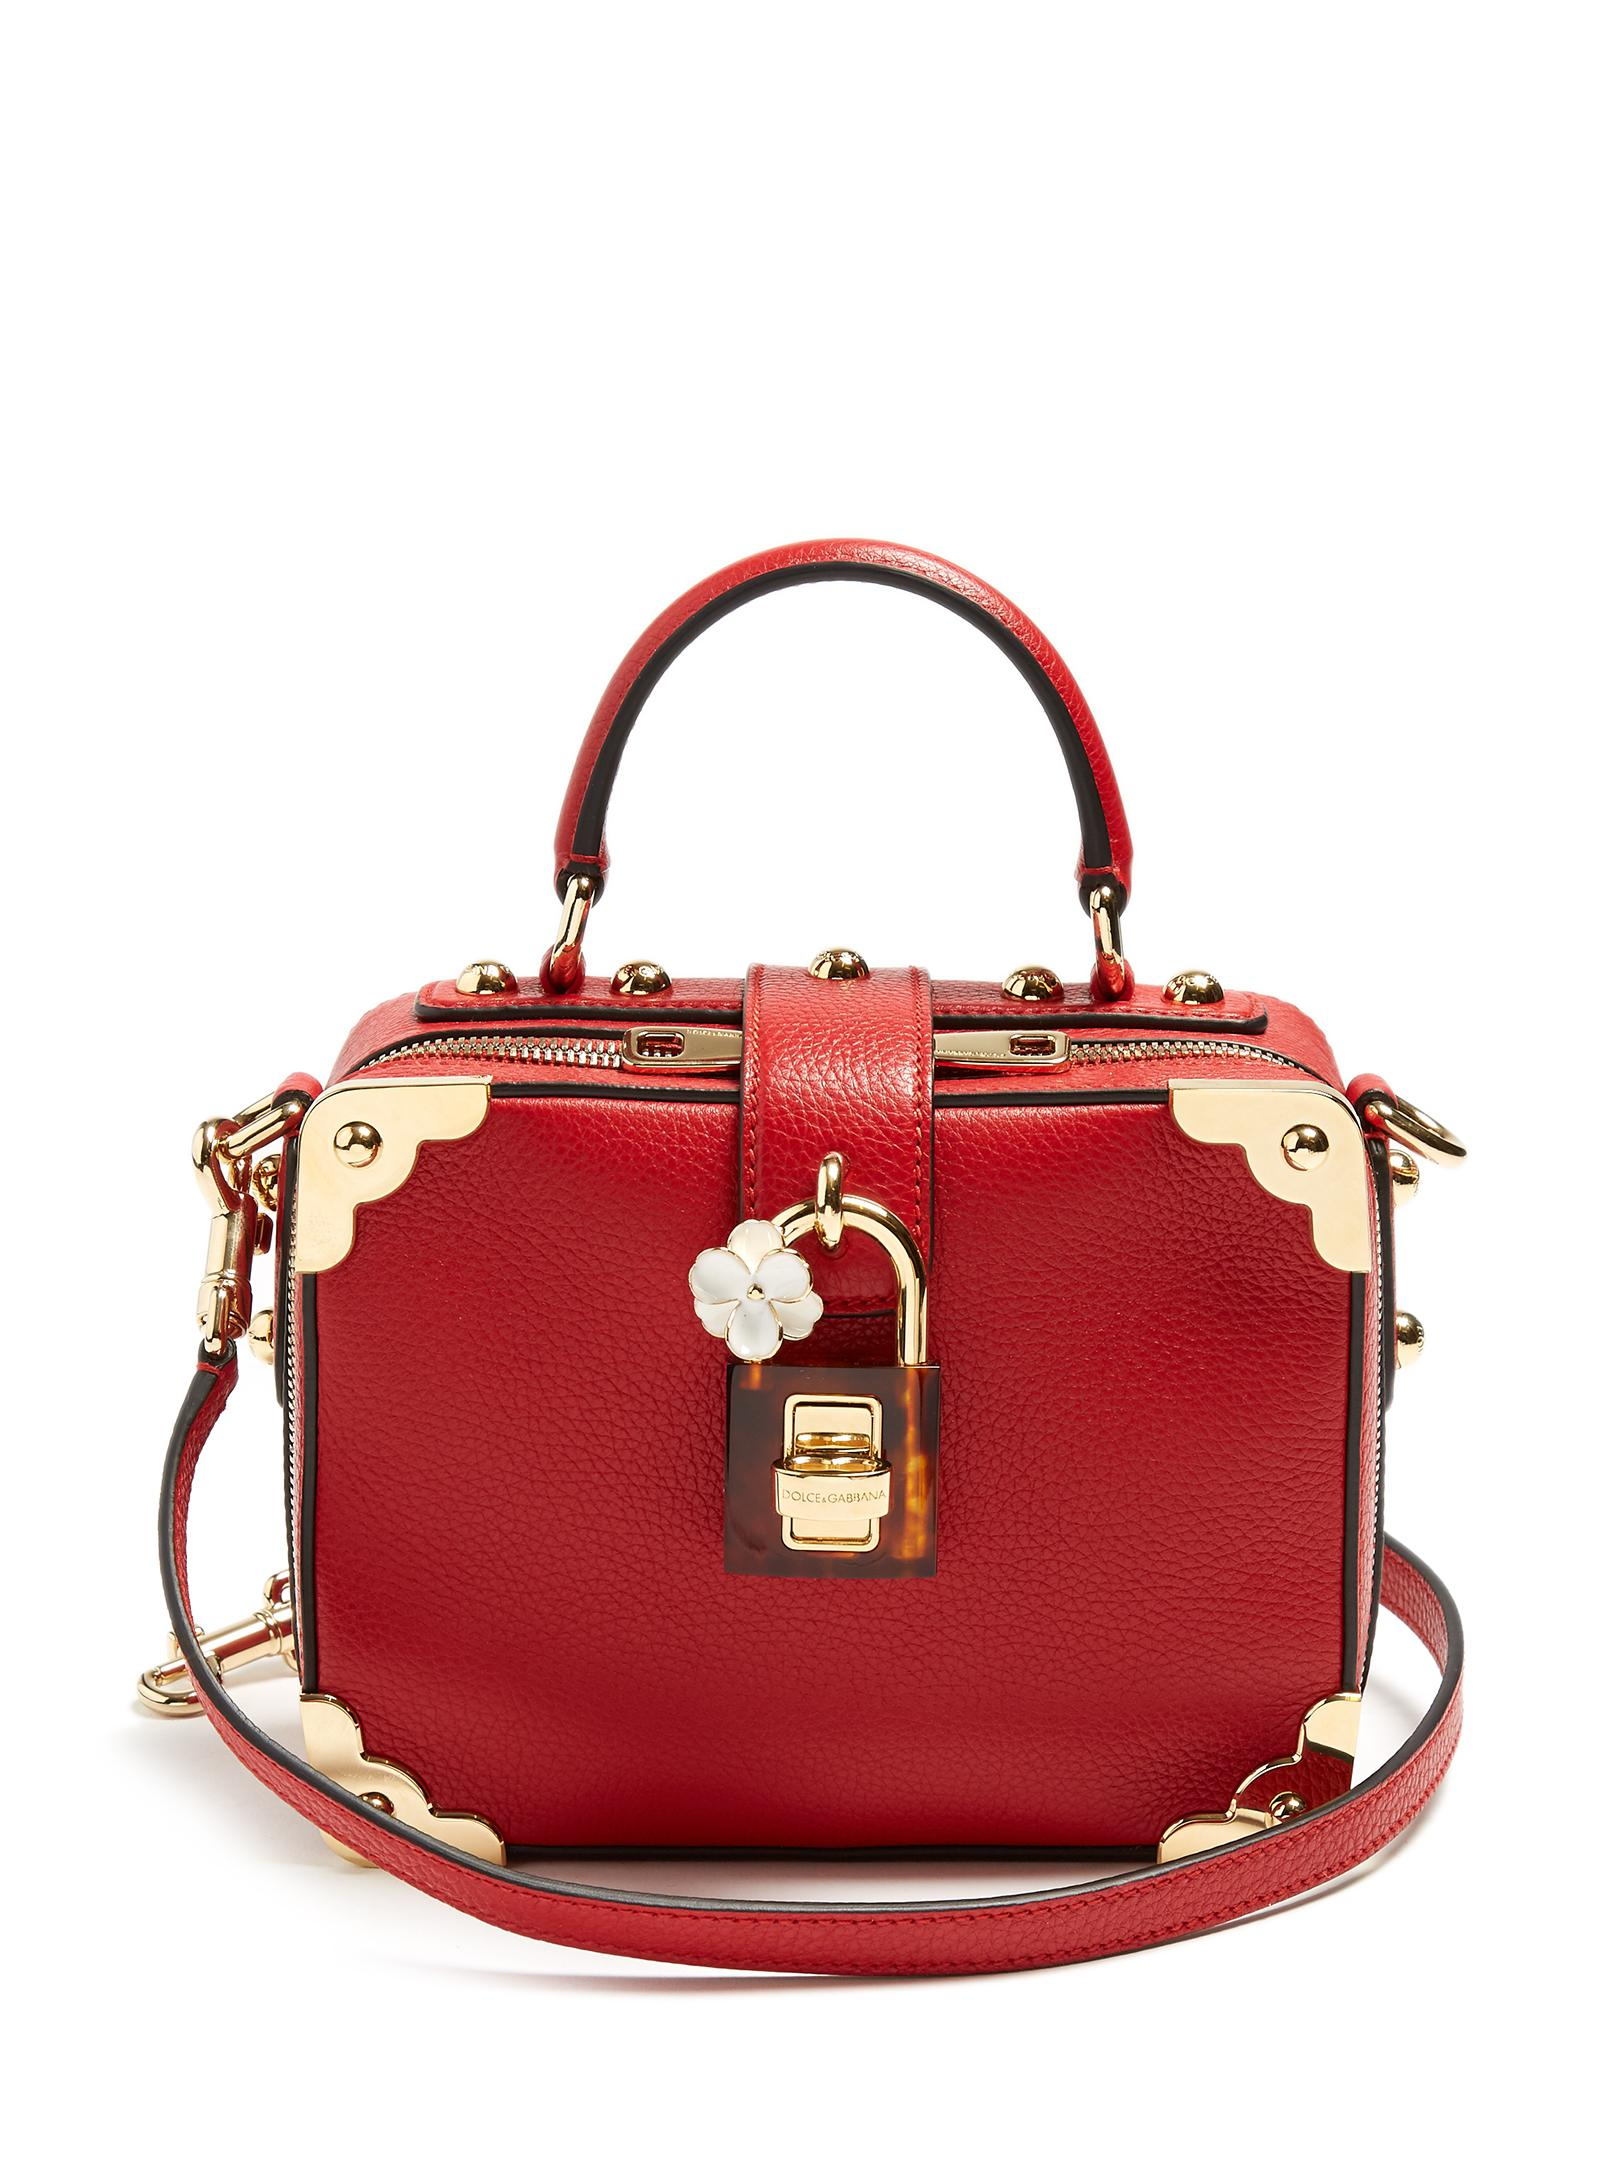 8c905e9057 Dolce   Gabbana Dolce Soft Grained-leather Box Bag in Red - Lyst